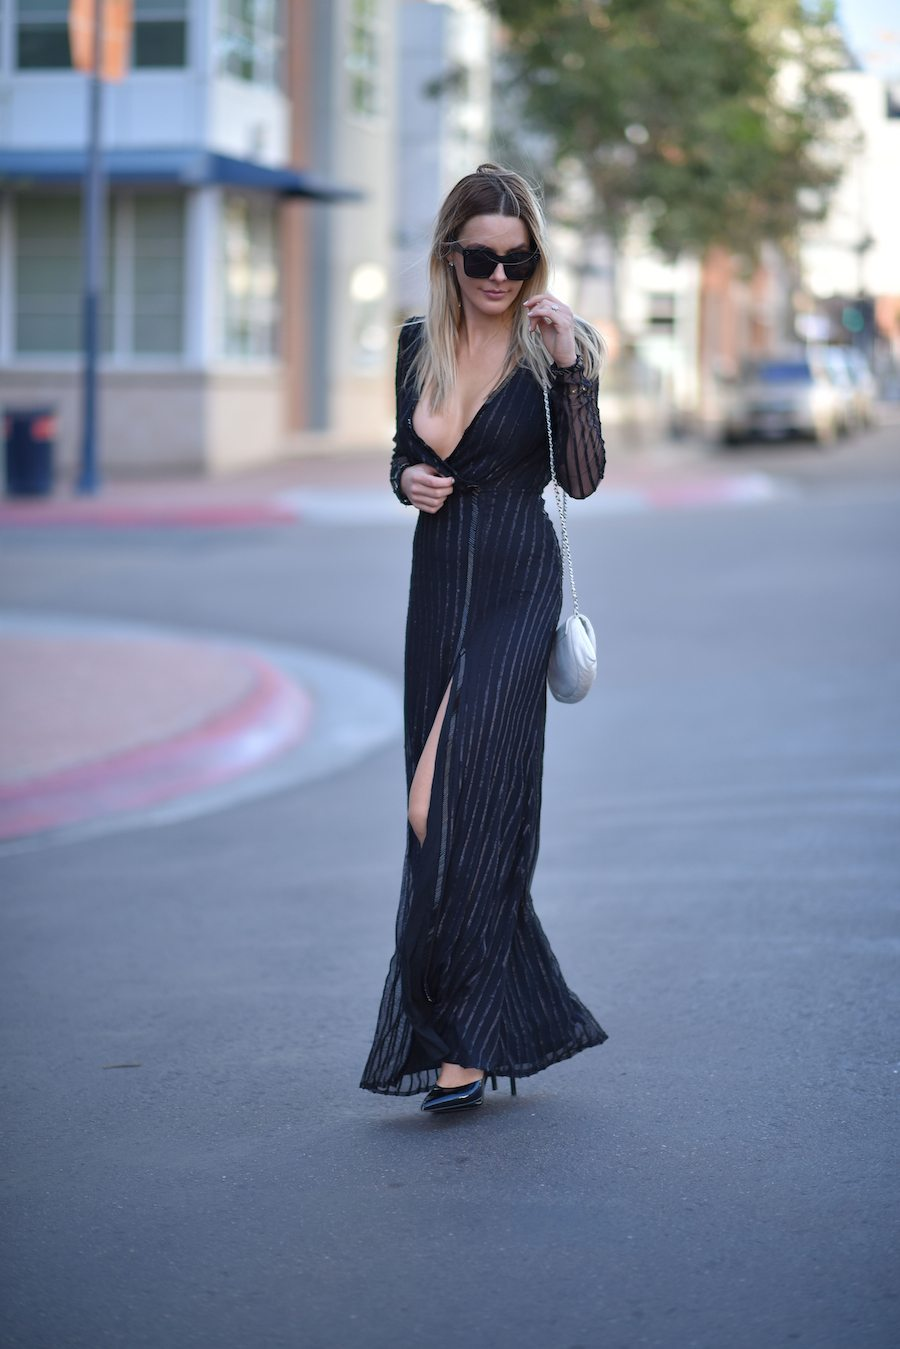 The Skinny Confidential Valley Of The Dolls for Bloglovin | by the skinny confidential